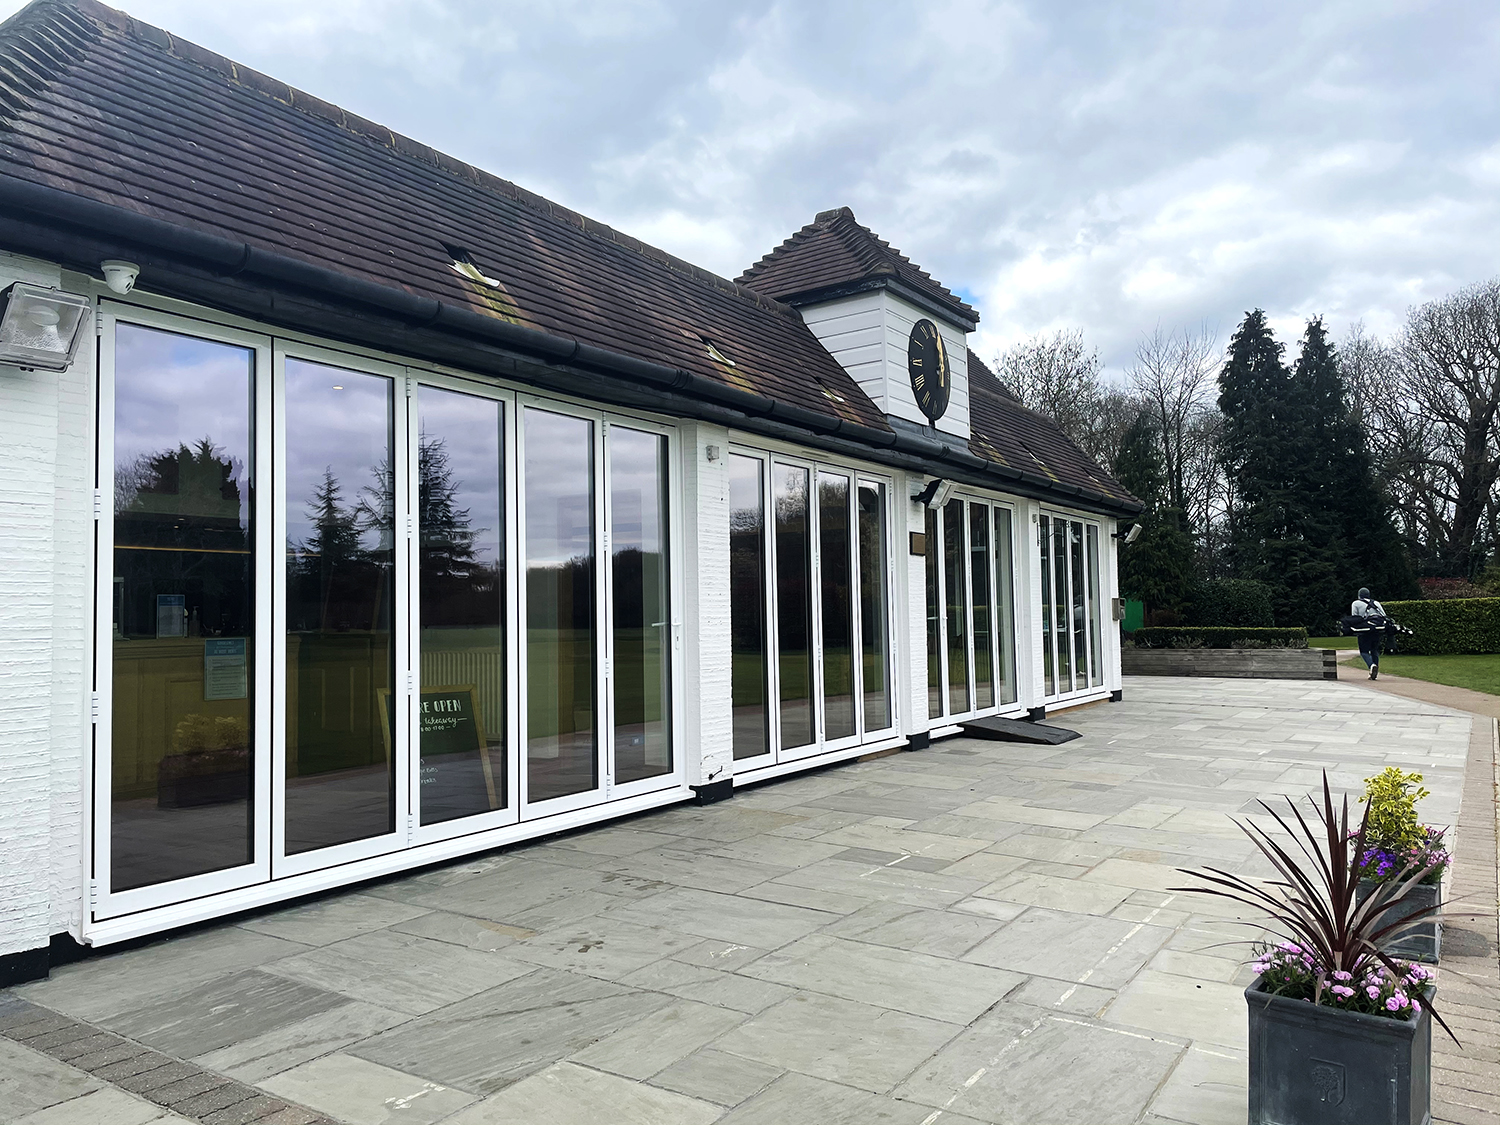 West Herts Golf Club's new BSF70 bi-fold doors provides stunning views